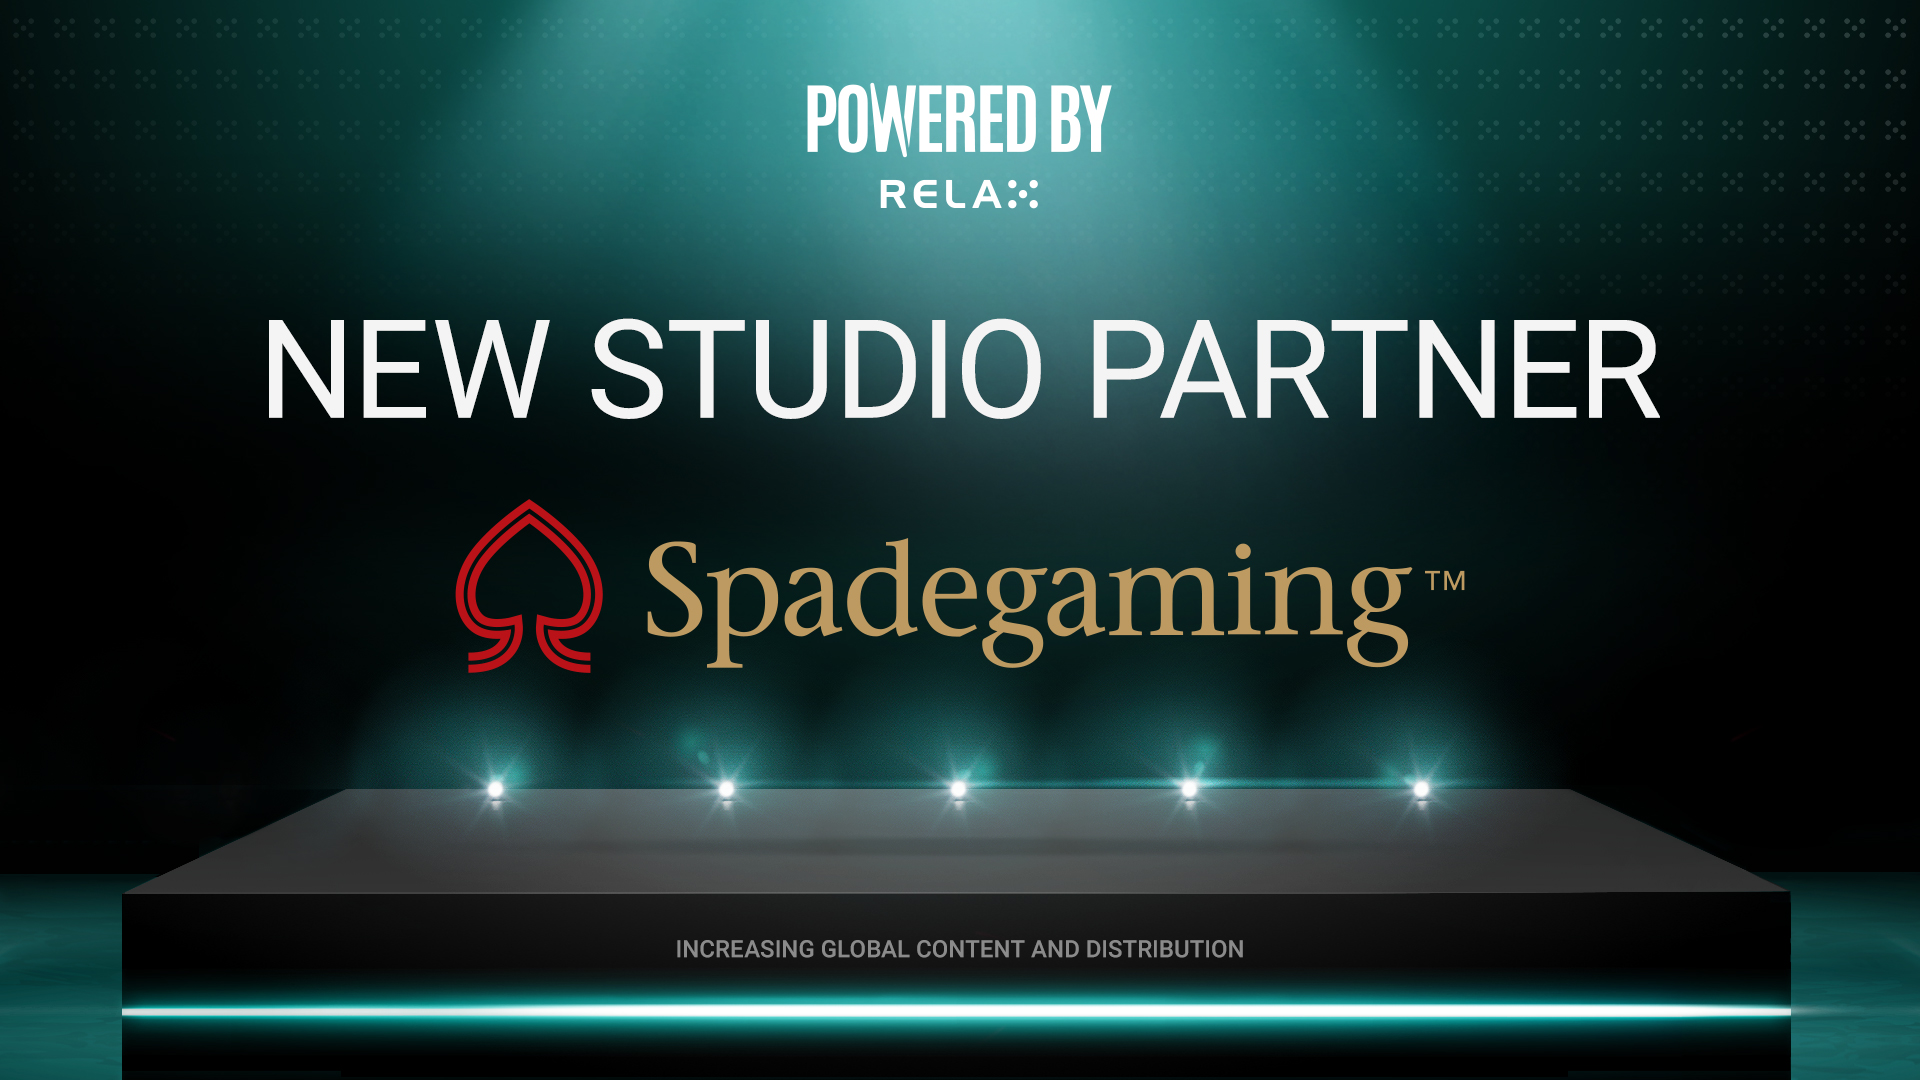 Relax signs Spadegaming as latest Powered By Relax recruit